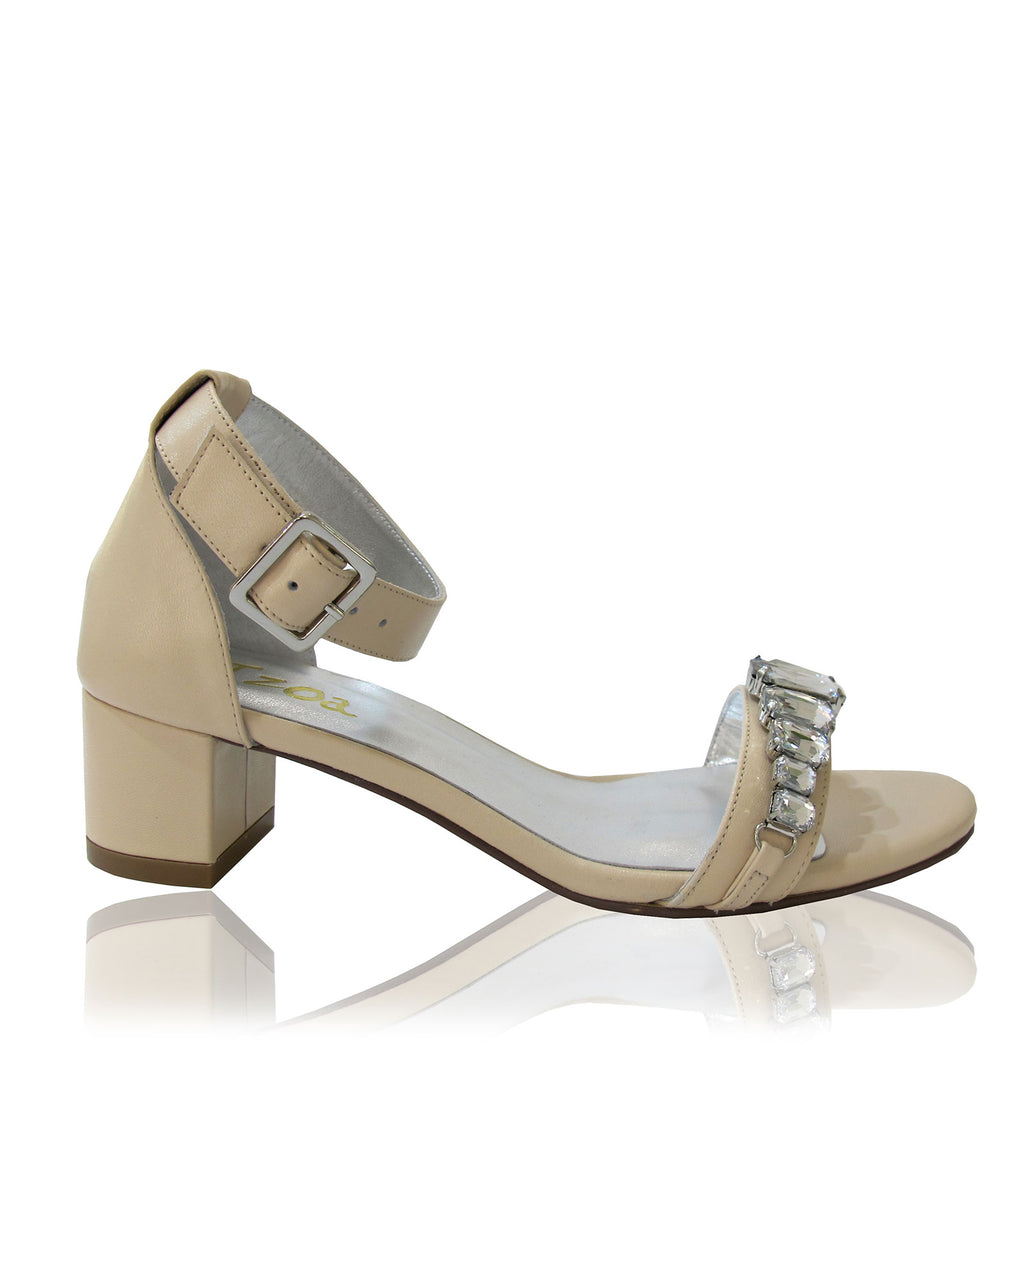 Izoa Manarola Sandals Nude [ONLY 35 & 37]